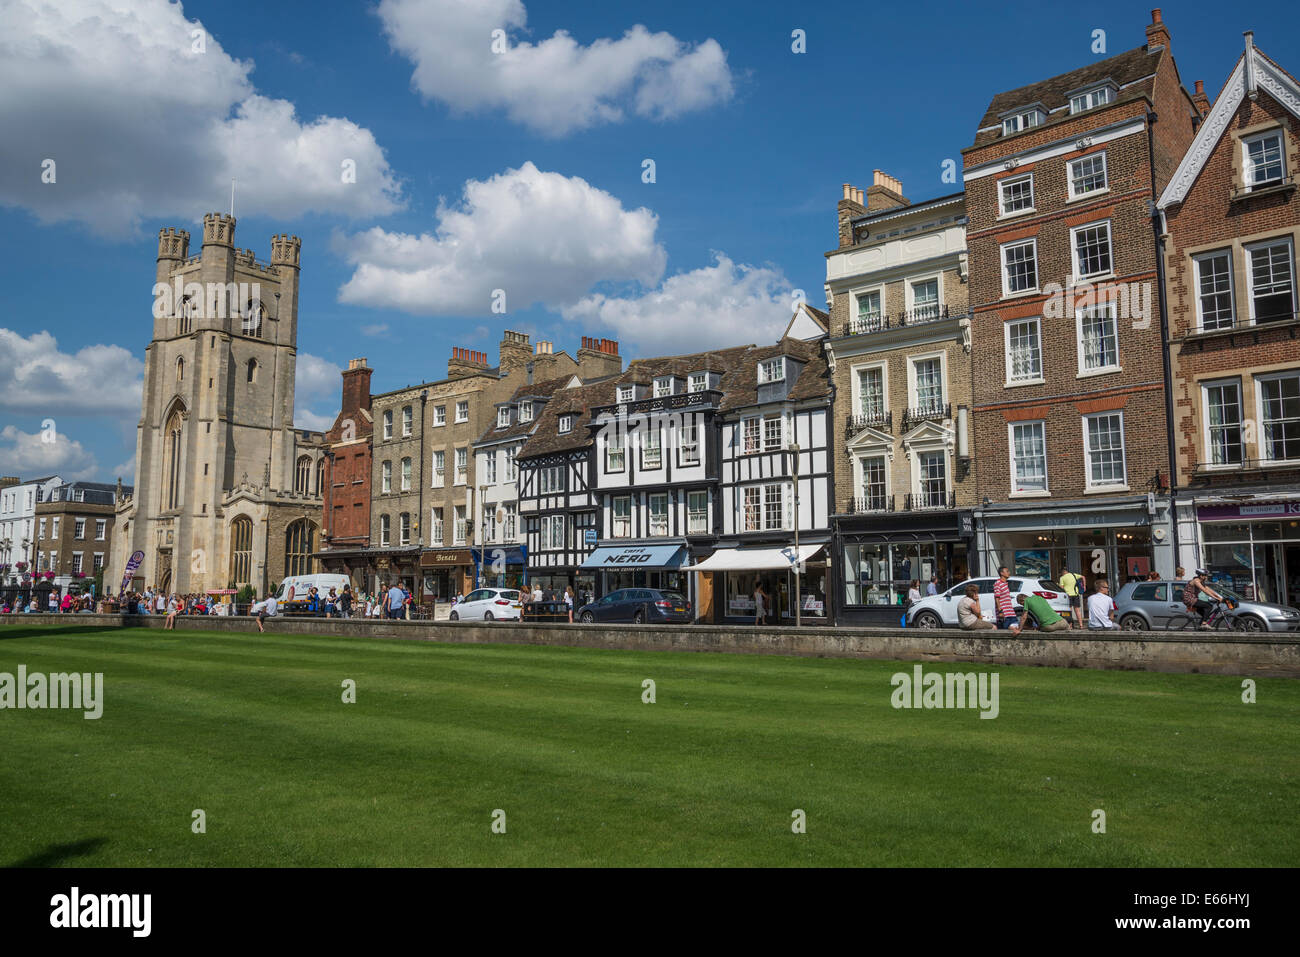 Row of houses and shops in King's Parade Street, Cambridge, England, UK - Stock Image